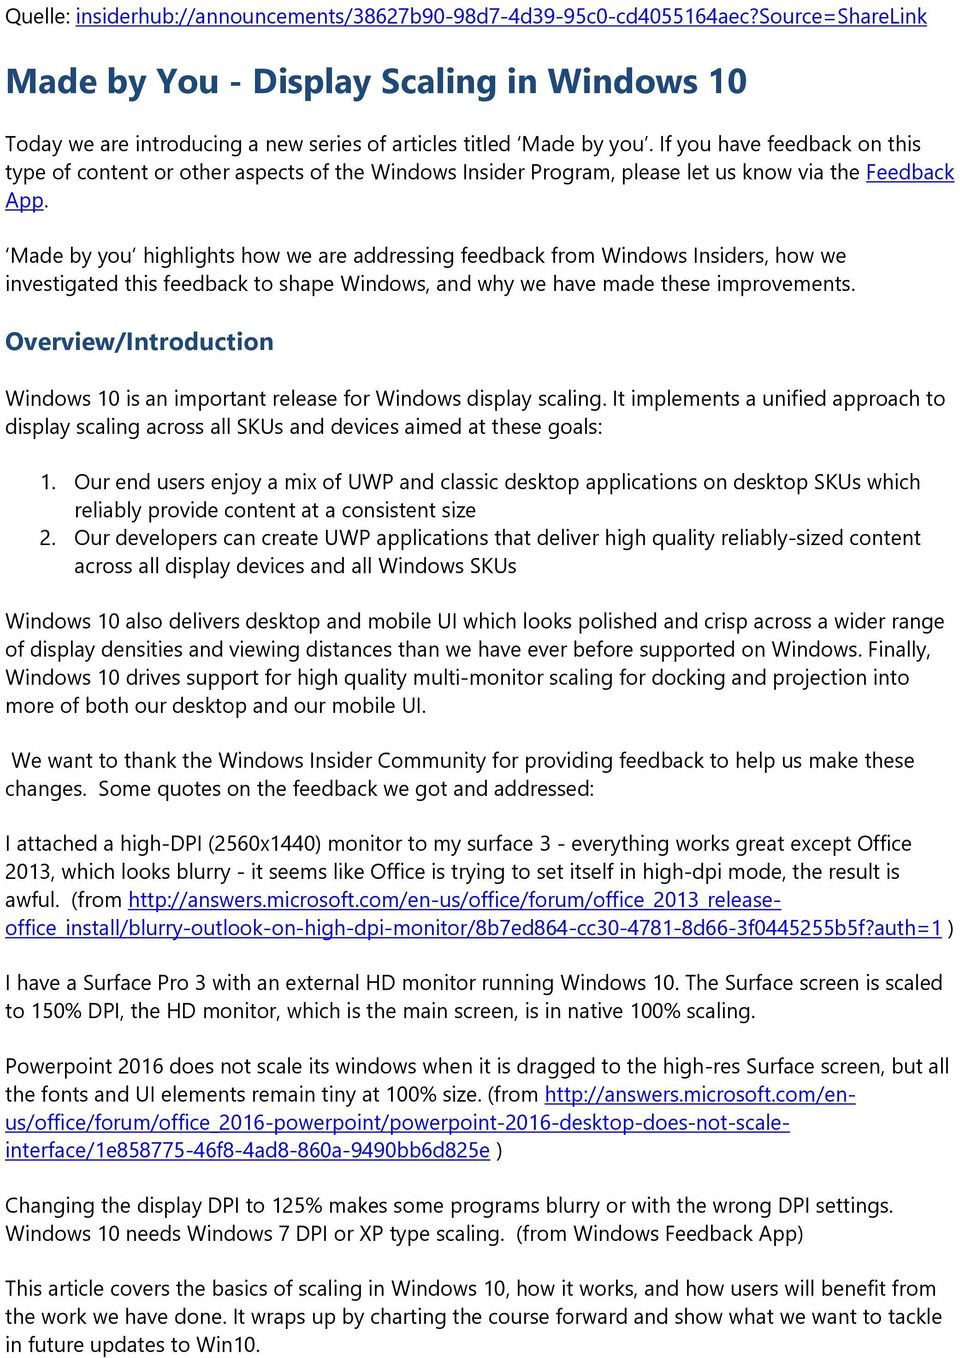 Made by You - Display Scaling in Windows 10 - PDF